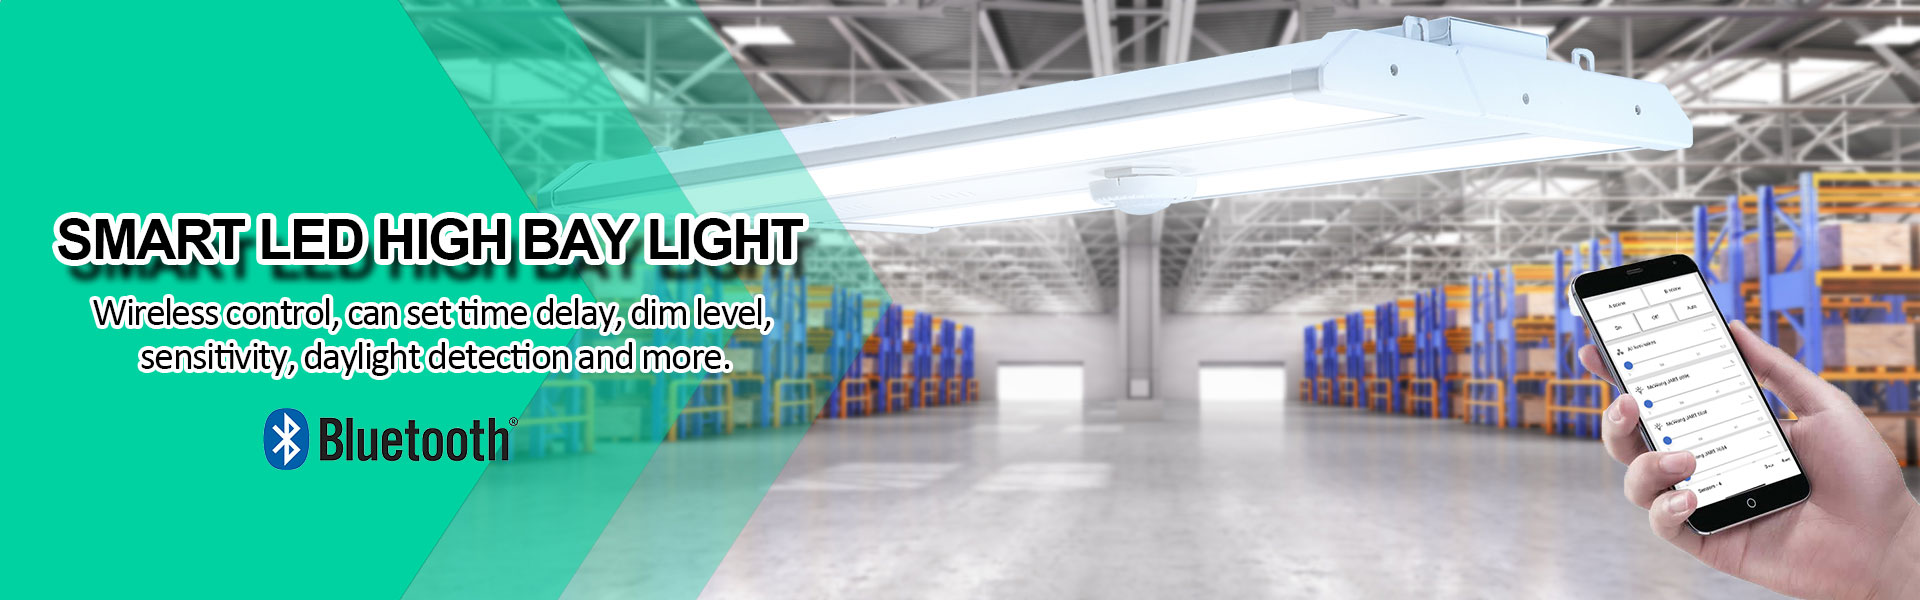 Industrial led high bay with smart bluetooth coltrol